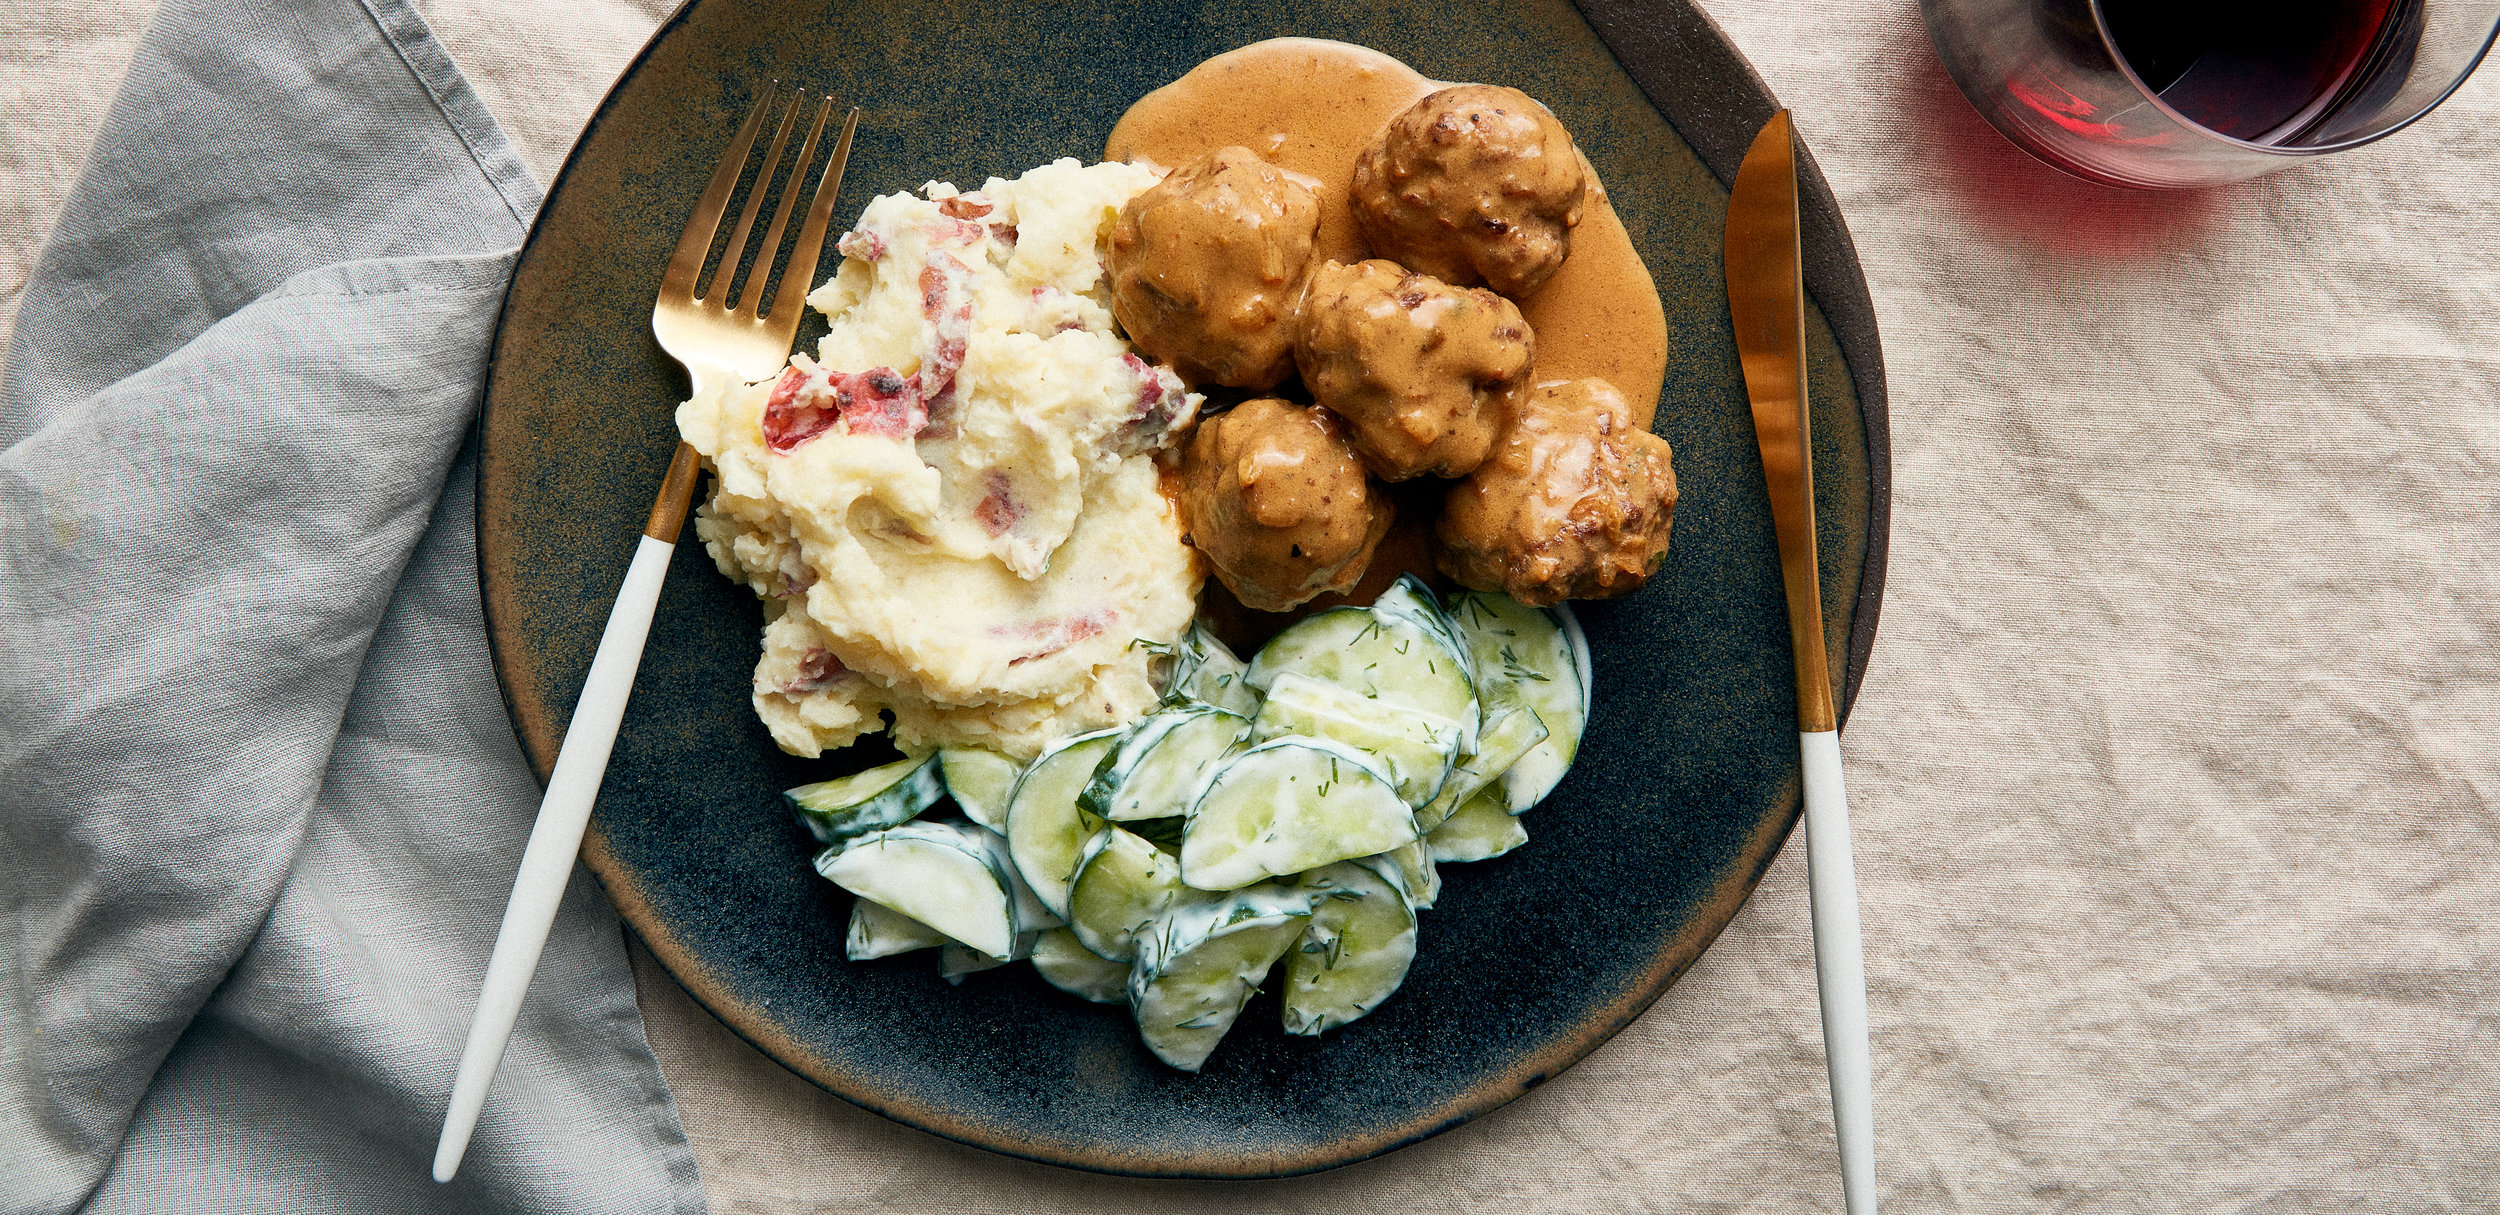 Swedish Meatballs with Mashed Potatoes, and Sour Cream Dill Cucumber salad — 0021 — HERO.jpg